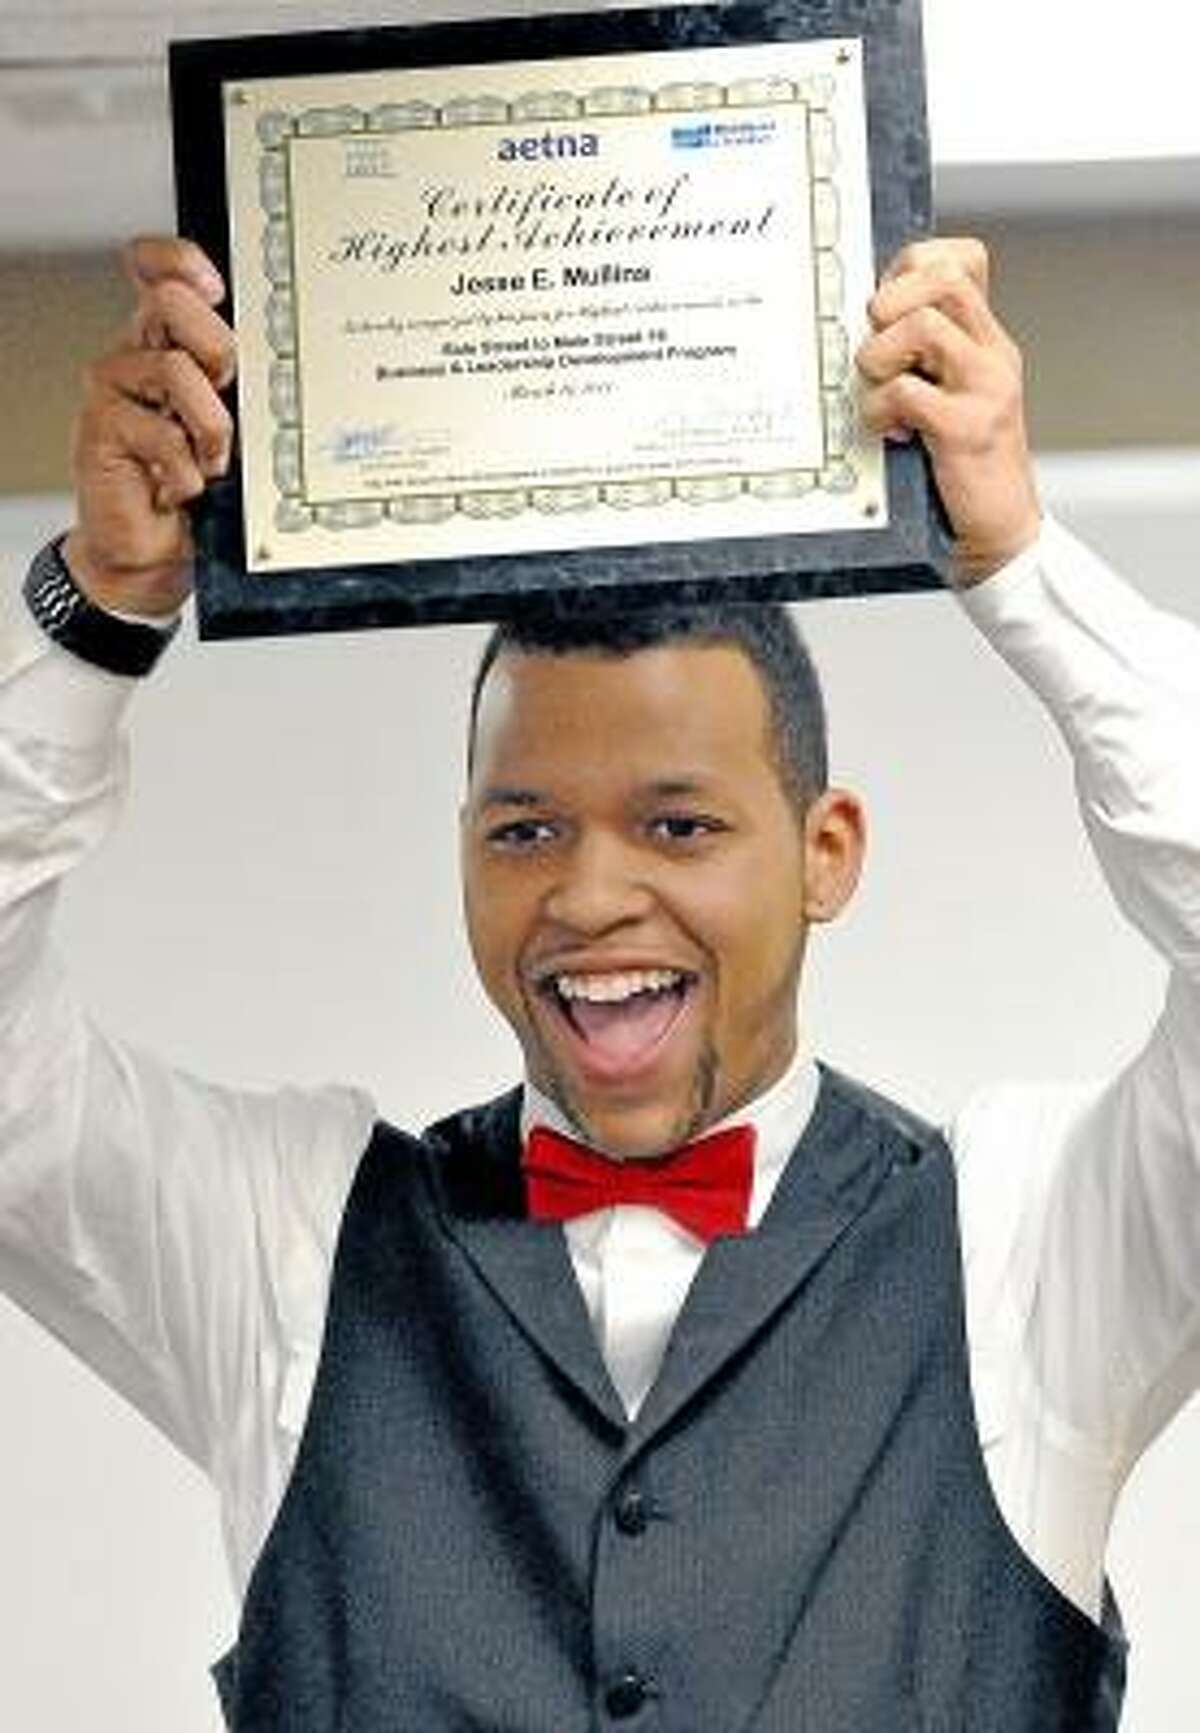 Catherine Avalone/The Middletown Press Jesse E. Mullins raises after learning he received the Certificate of Highest Achievement from Side Street to Main Street Business & Leadership Development Program Wednesday evening during their sixteenth graduation sponsored by the Middlesex County Chamber of Commerce at 393 Main Street in Middletown. The program is designed to assist minority small business owners in the community who have not had formal business training. The fee for the program is normally over $5,000 per individual but because of a grant from Aetna, there is no charge for qualified participants. Mullins was